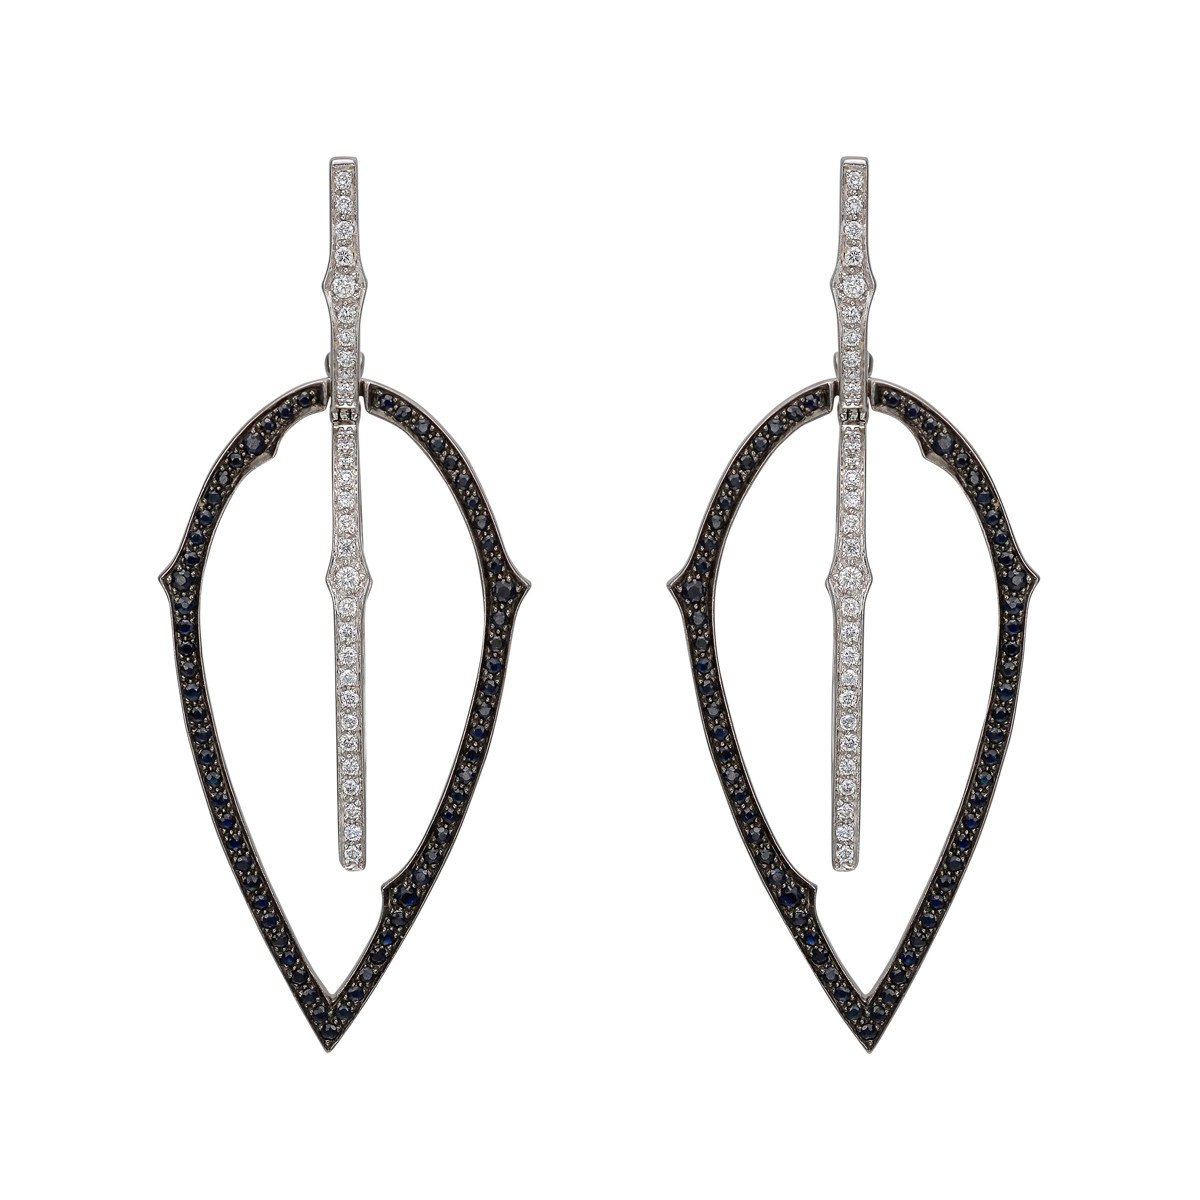 Black & White Diamond 'Thorn' Drop Earrings